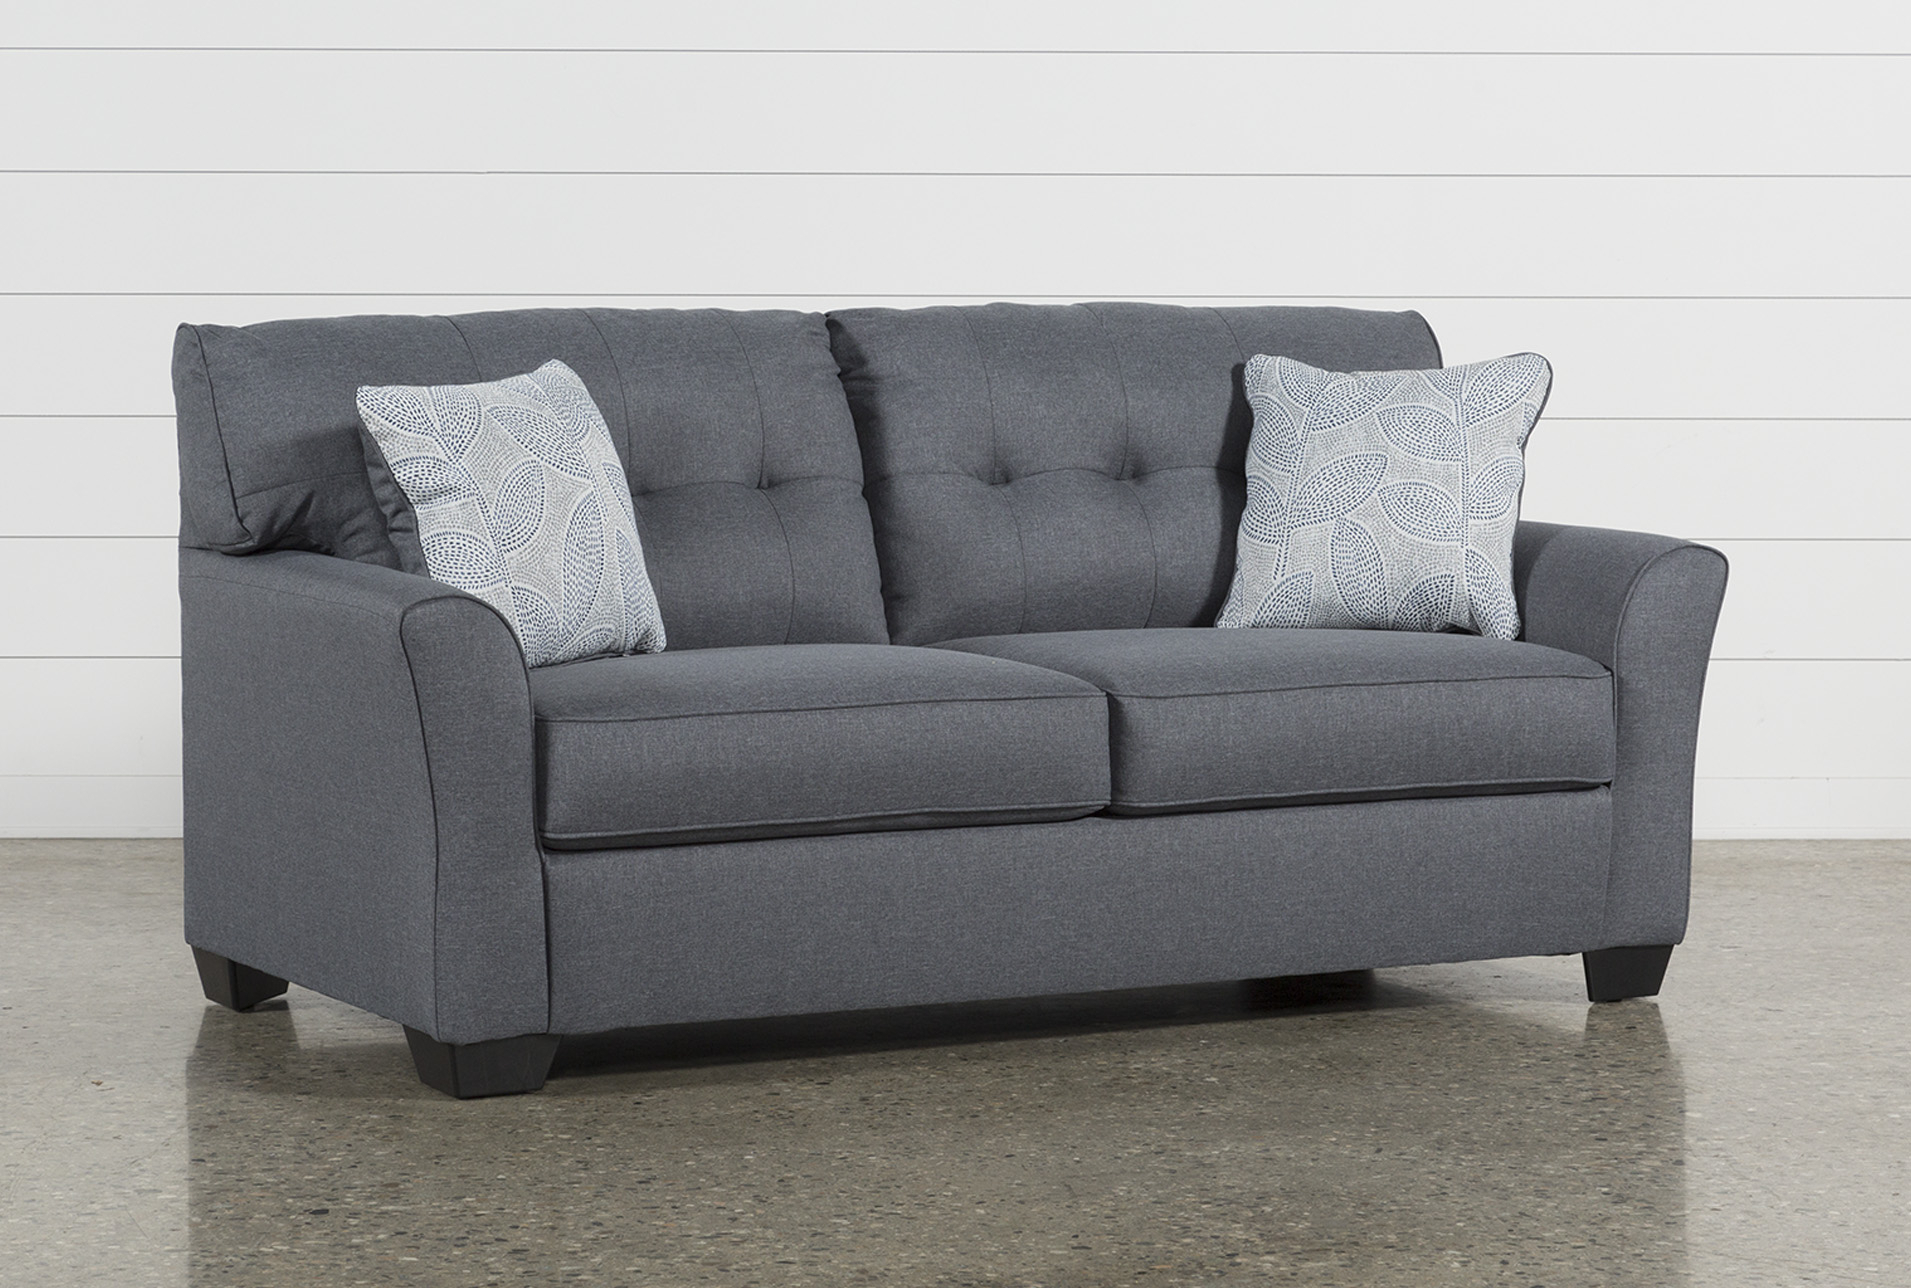 Jacoby Gunmetal Sofa In 2018 | Products | Pinterest | Sofa, Sleeper Within Mcdade Graphite Sofa Chairs (View 3 of 25)